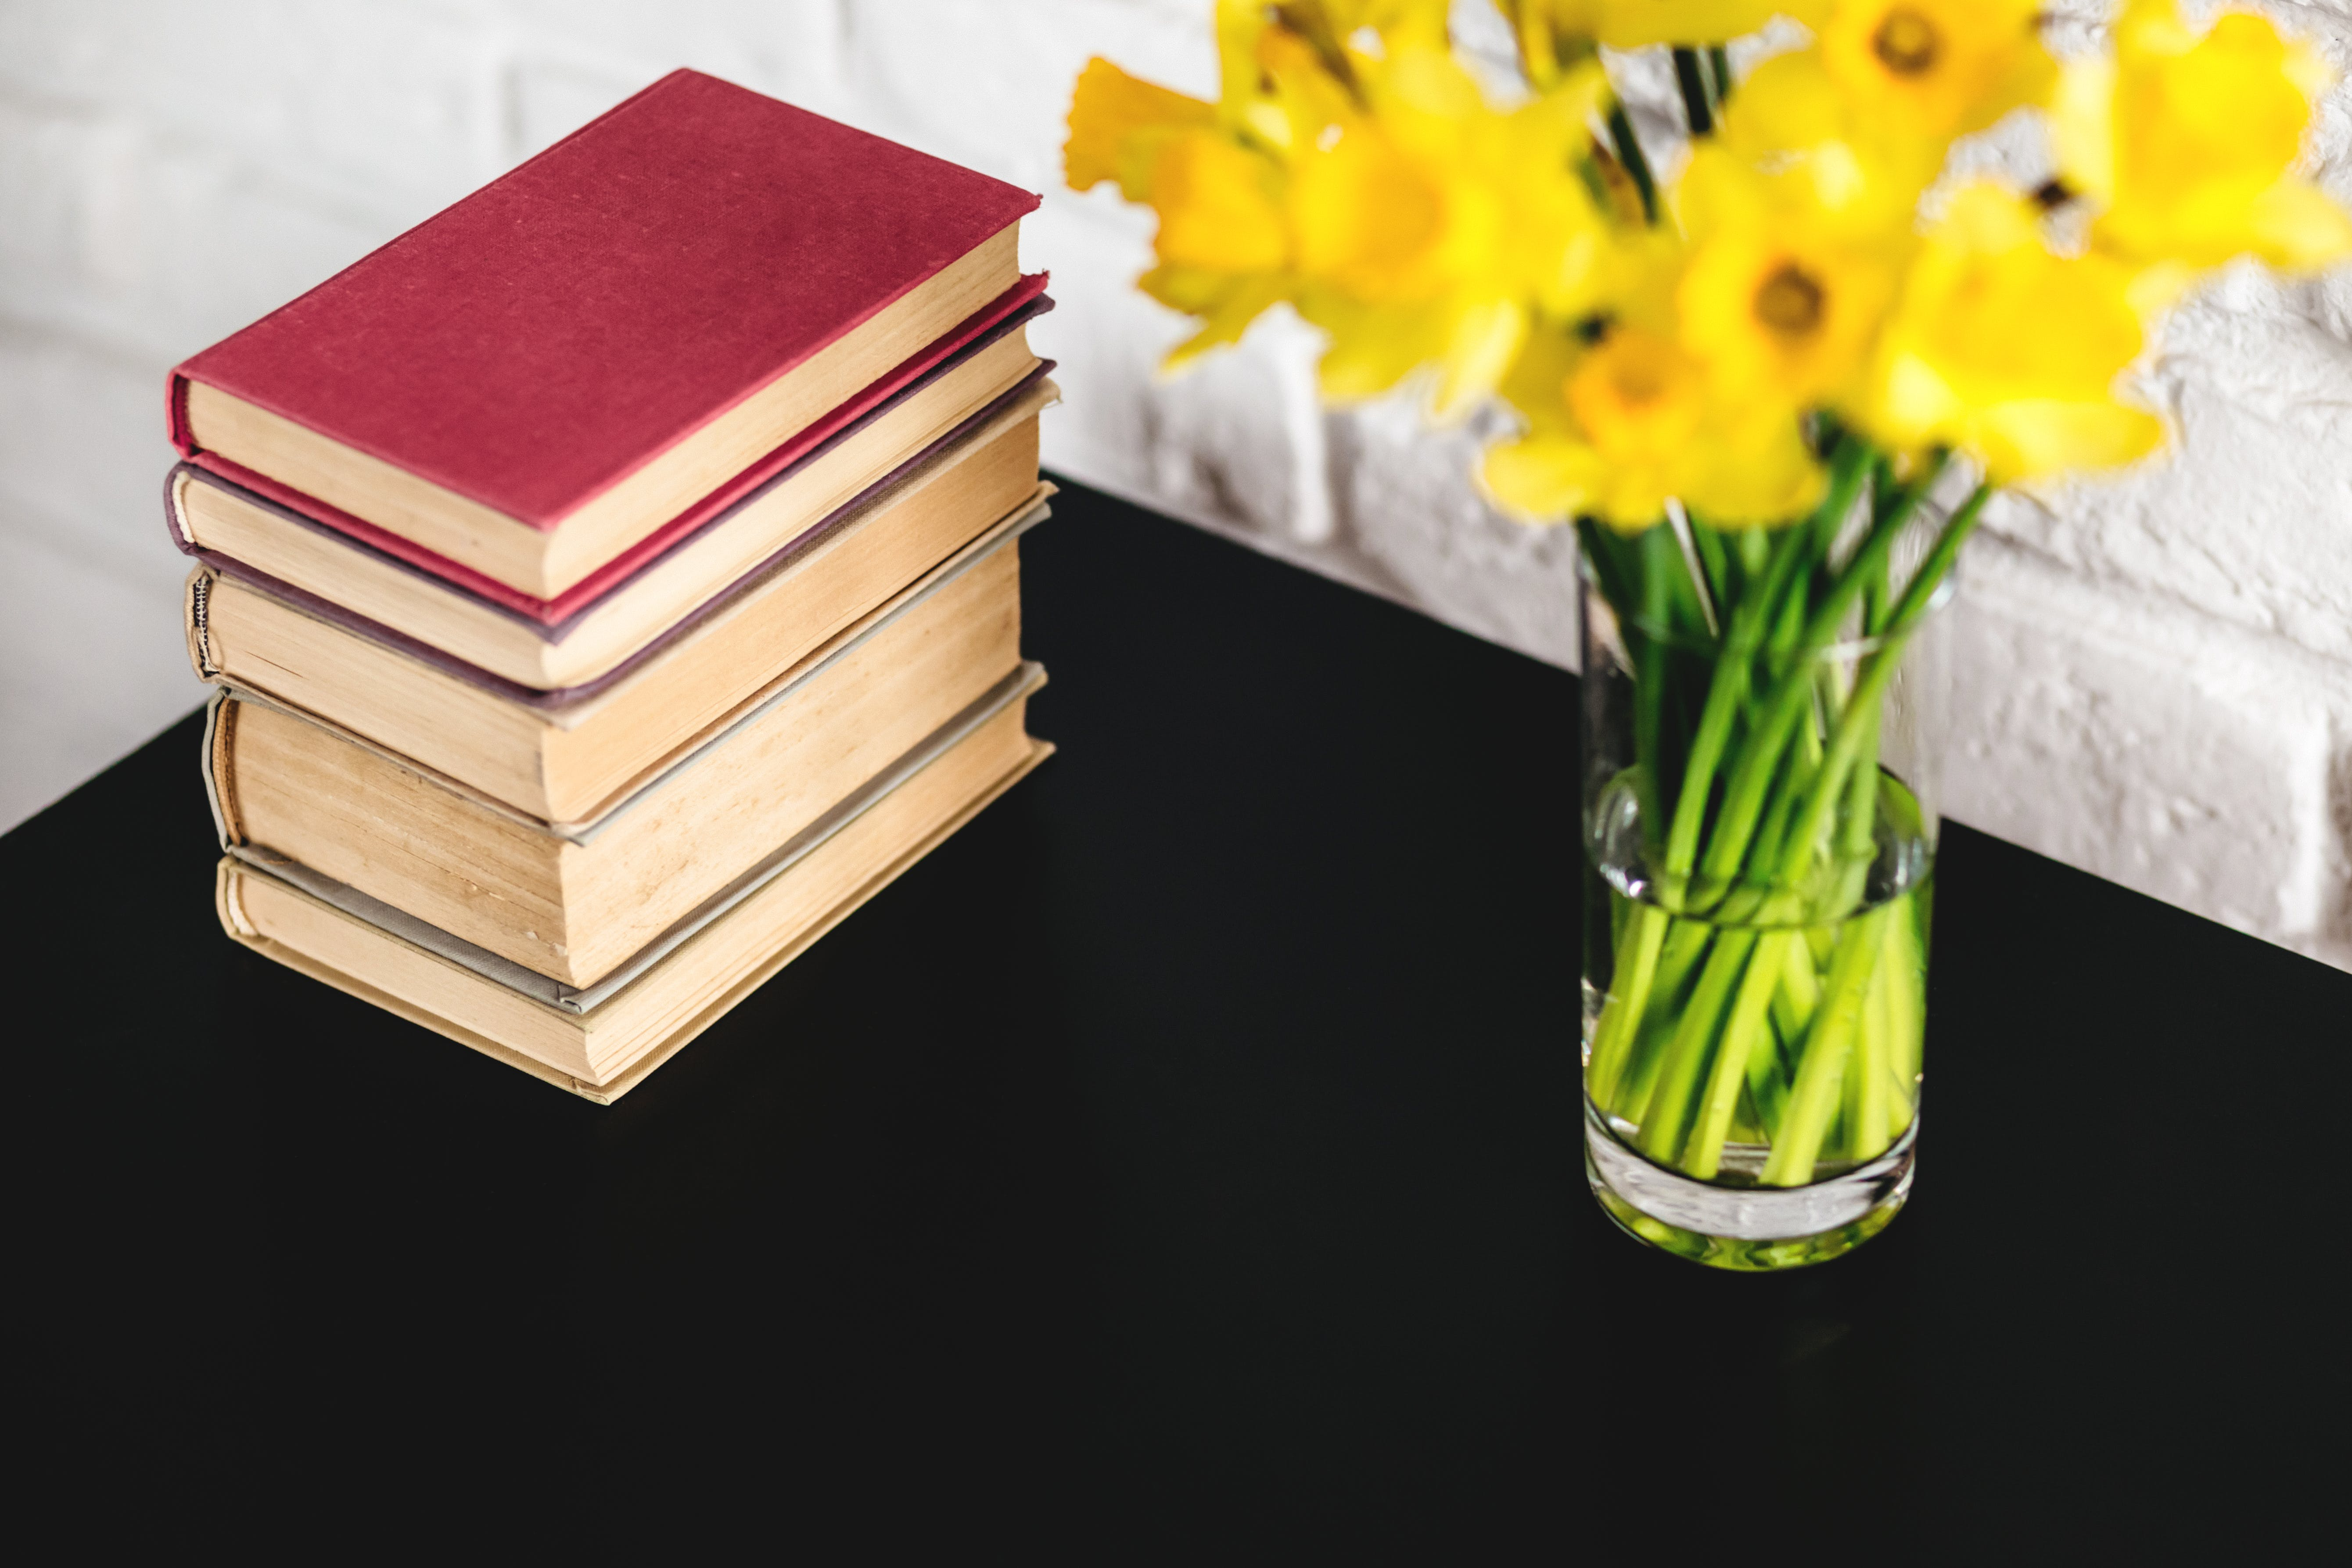 Hardbound Books Beside Yellow Petaled Flowers